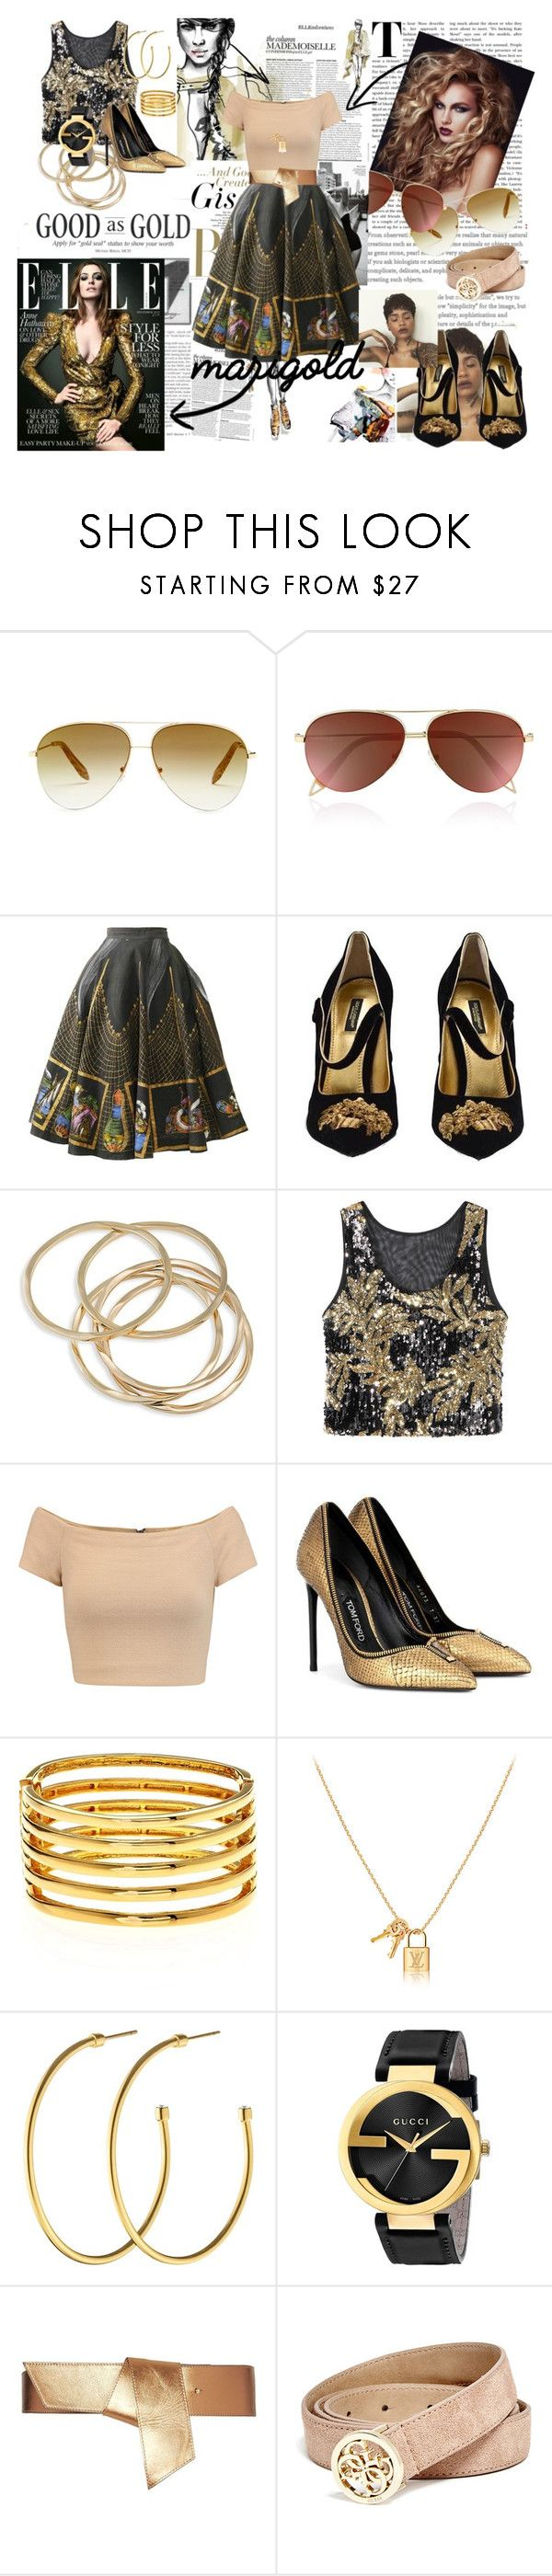 """Golden"" by hermosa-atkins on Polyvore featuring Victoria Beckham, Dolce&Gabbana, ABS by Allen Schwartz, Alice + Olivia, Tom Ford, Kenneth Jay Lane, Dyrberg/Kern, Gucci, Maison Boinet and GUESS"